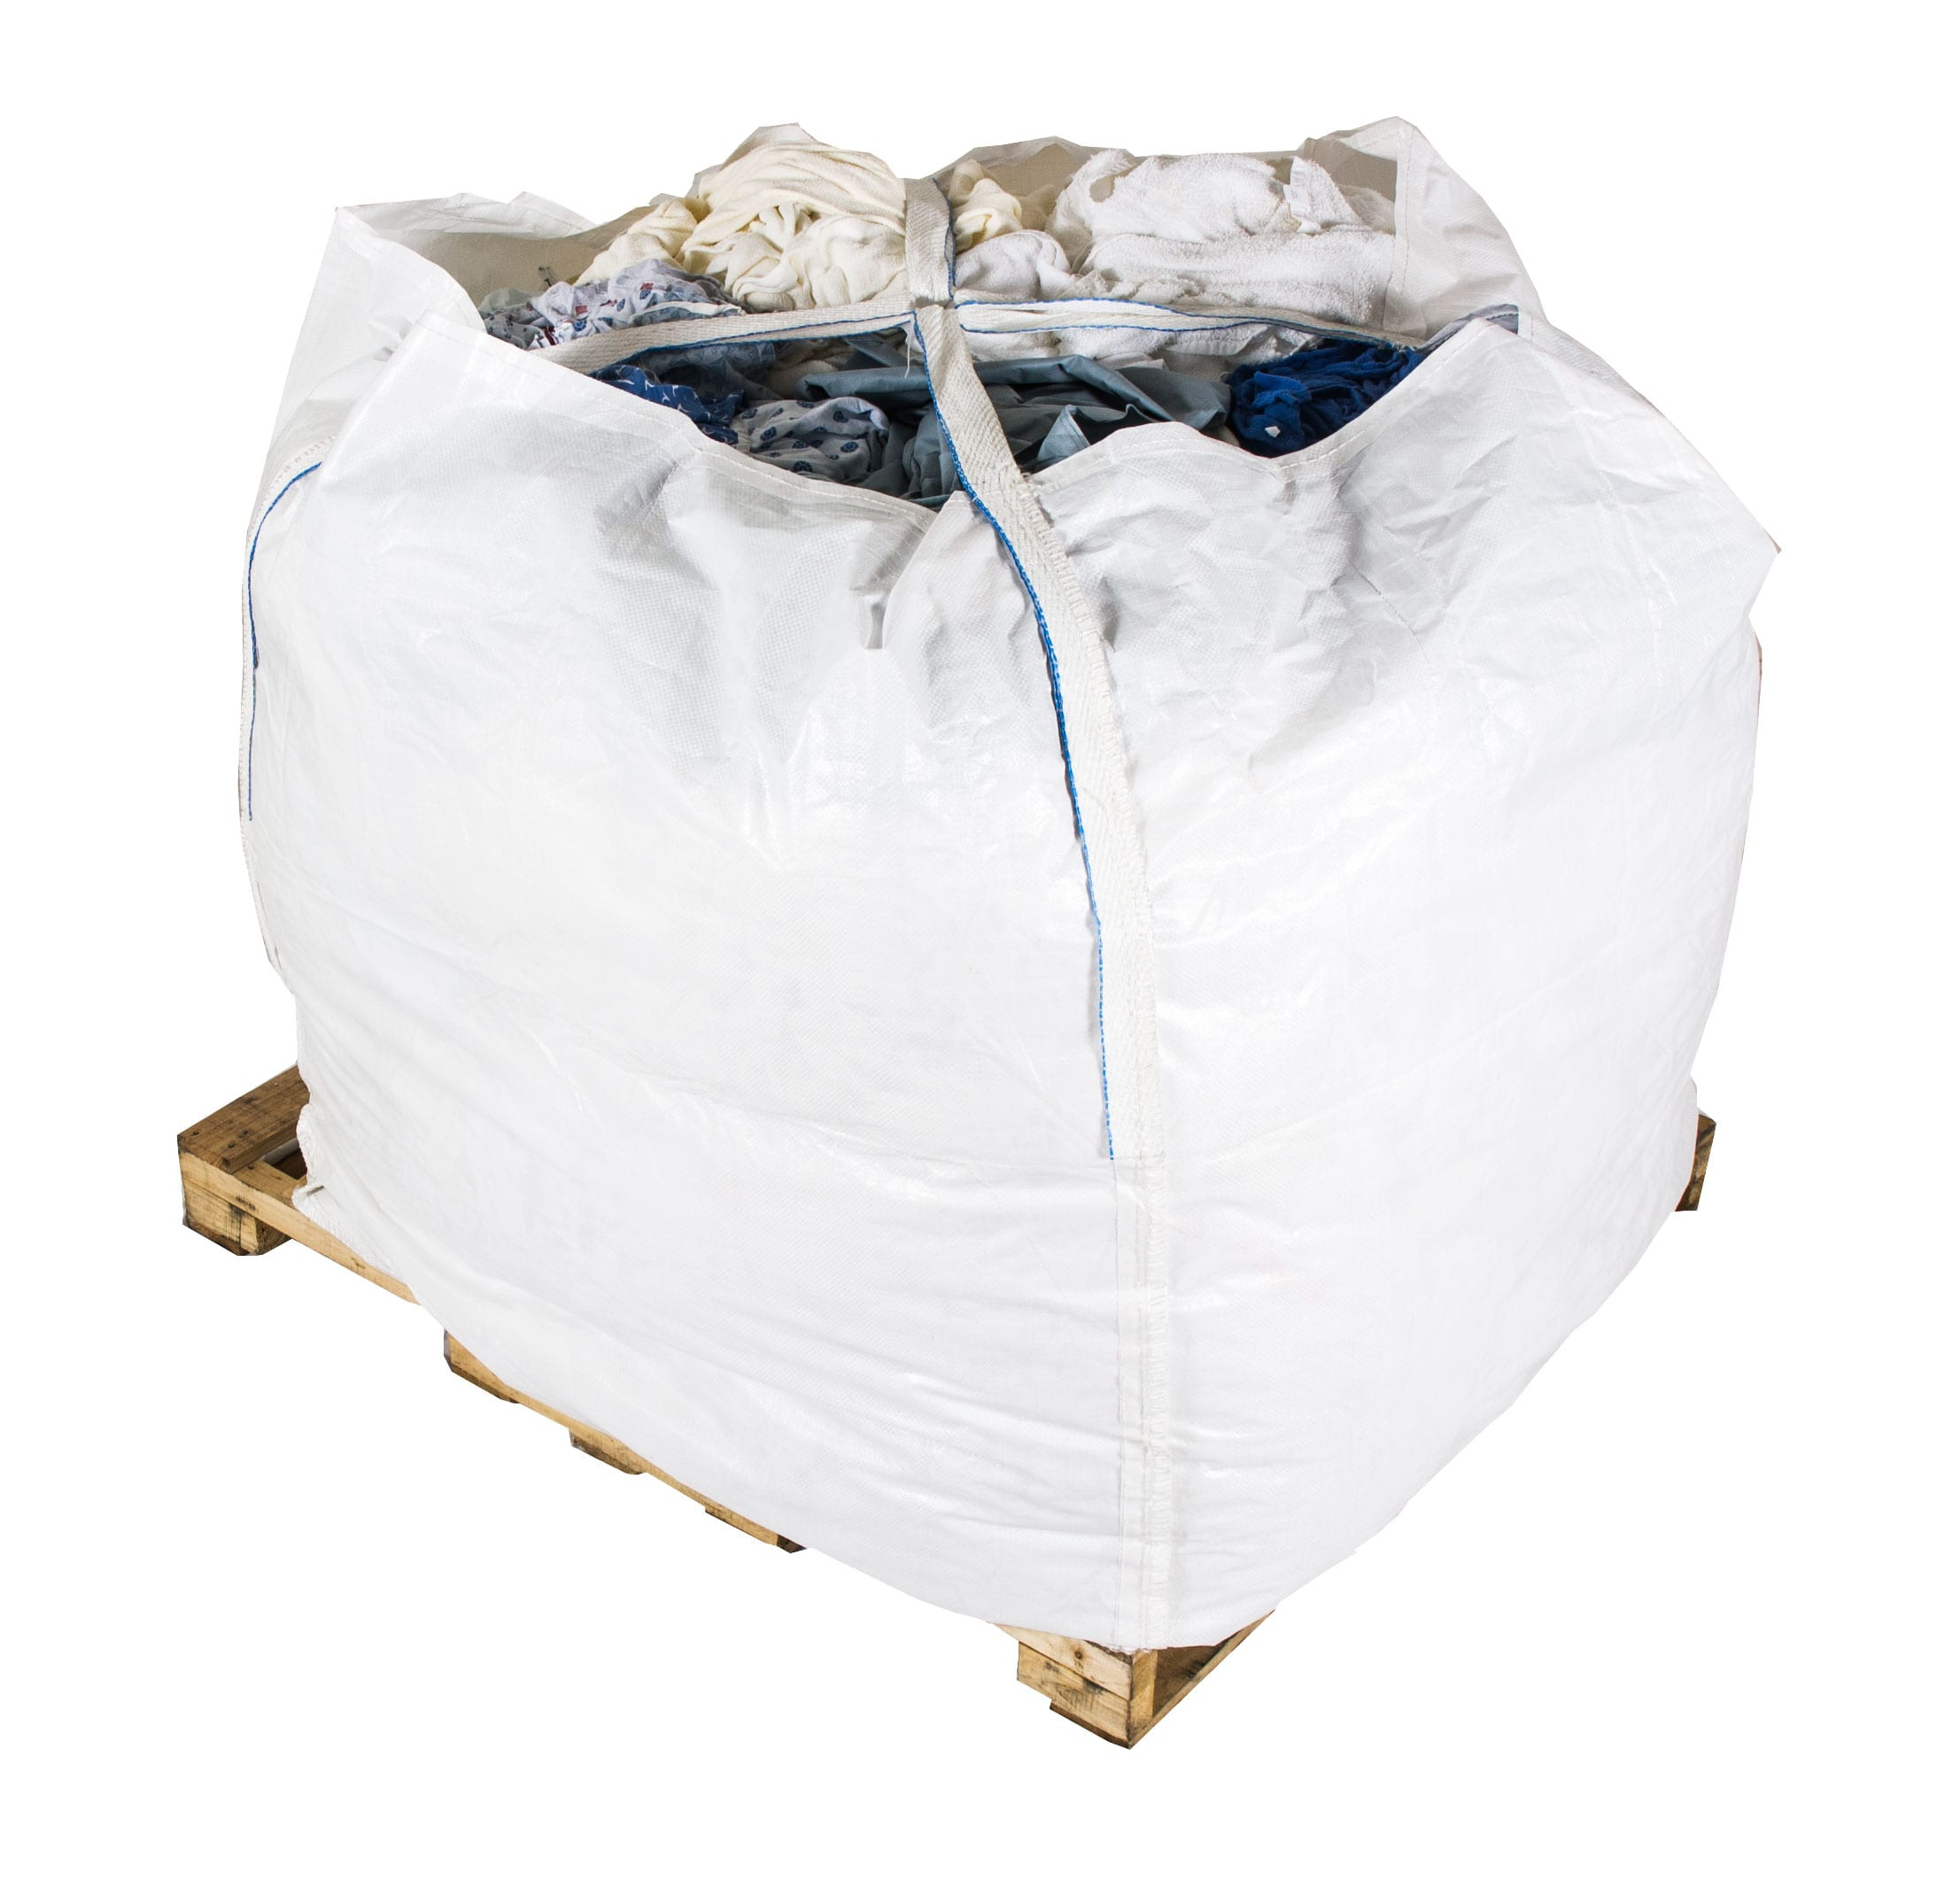 Plastic bag on pallet filled with rags